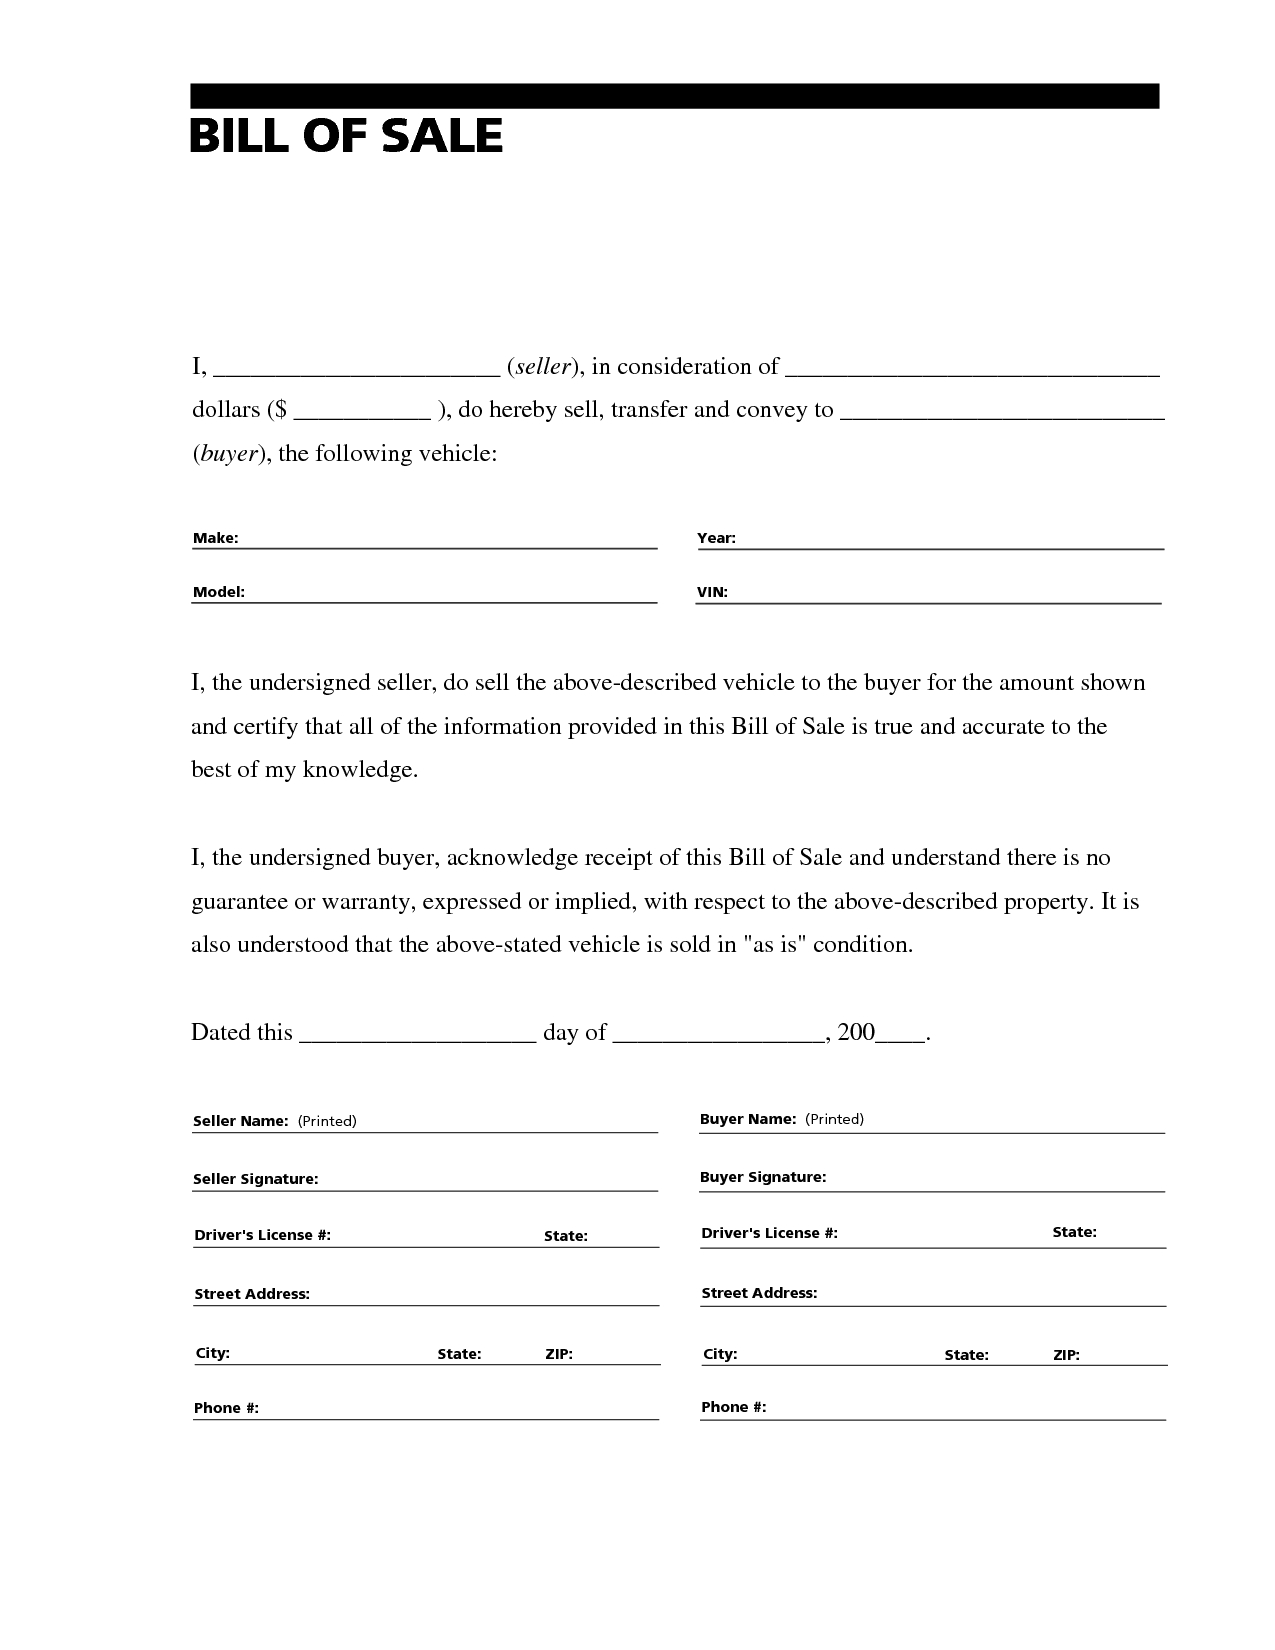 Full and Final Settlement Letter Template Car Accident - Printable Sample Free Car Bill Of Sale Template form